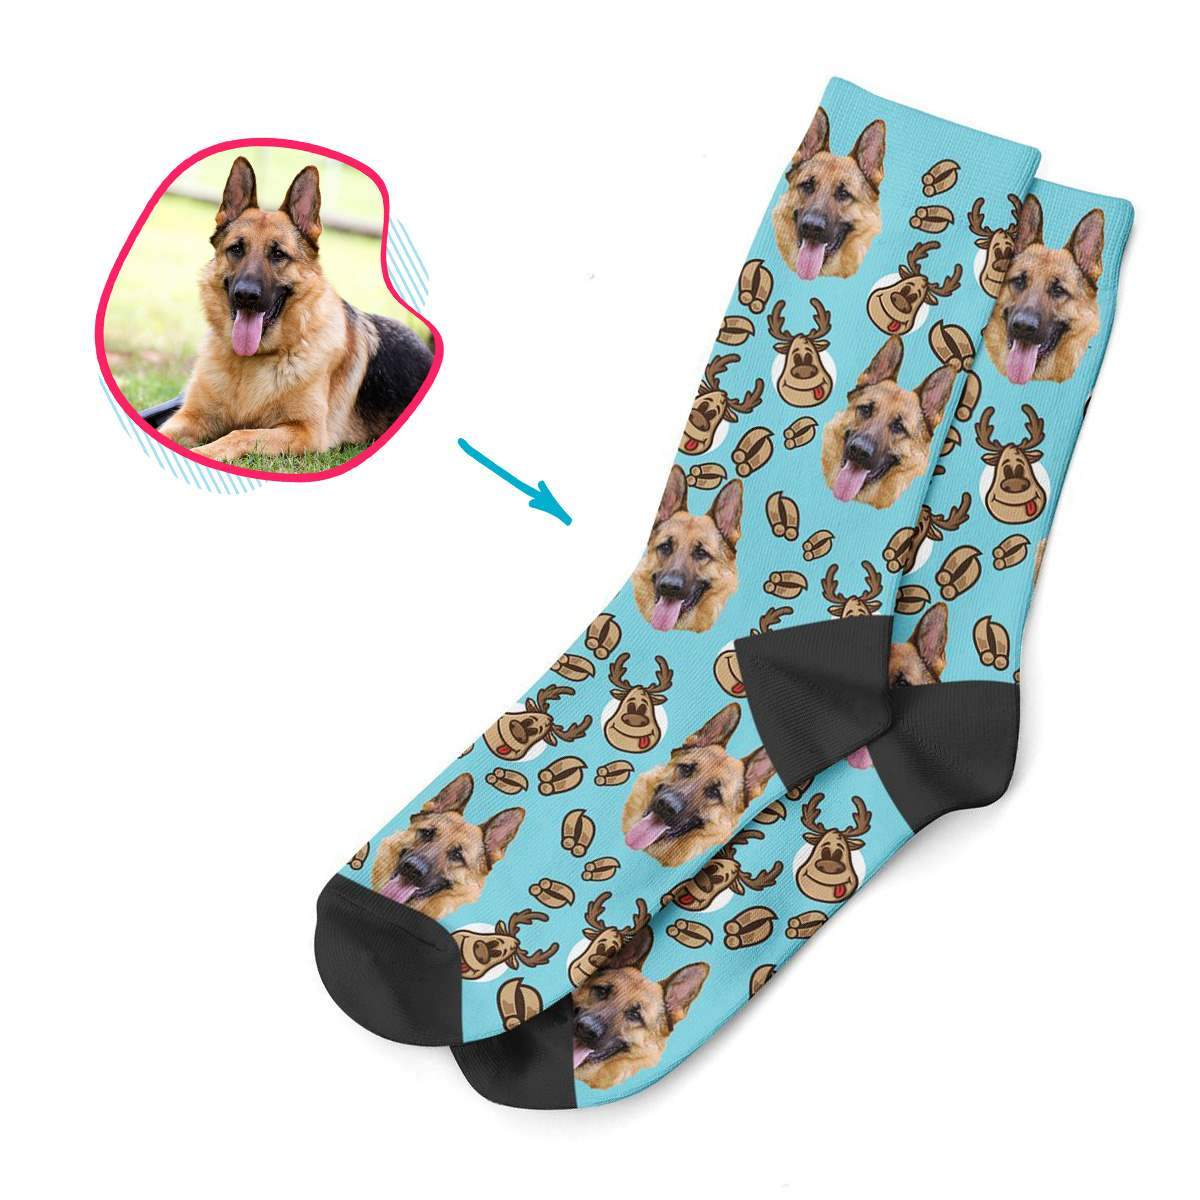 blue Deer Hunter socks personalized with photo of face printed on them